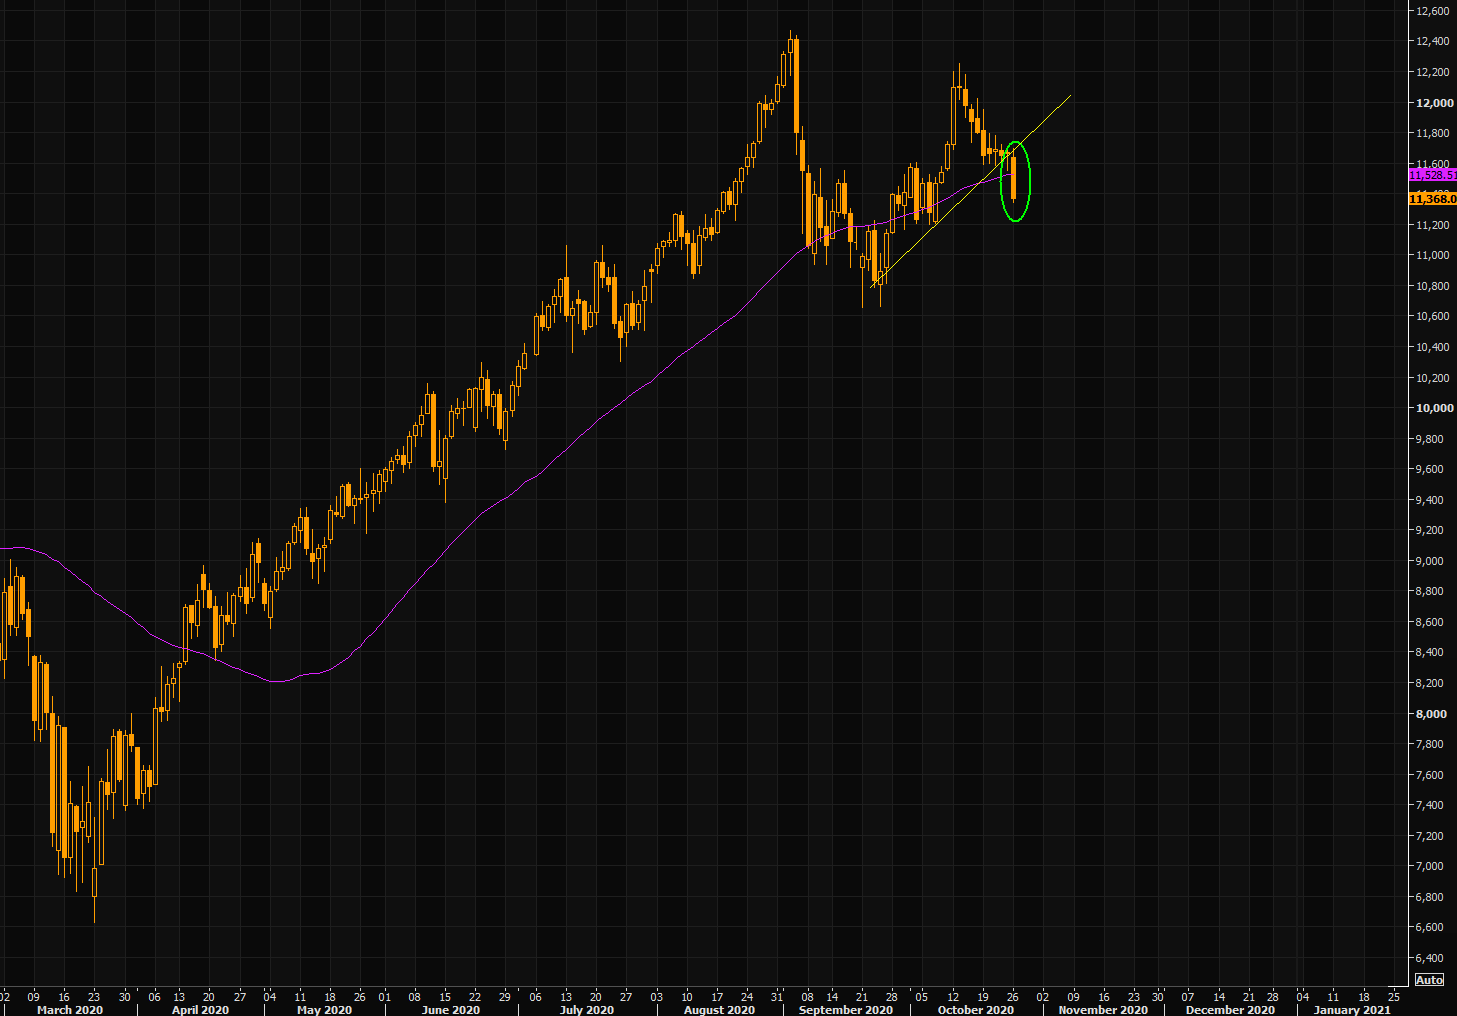 Nasdaq chart (with 50 day moving average)